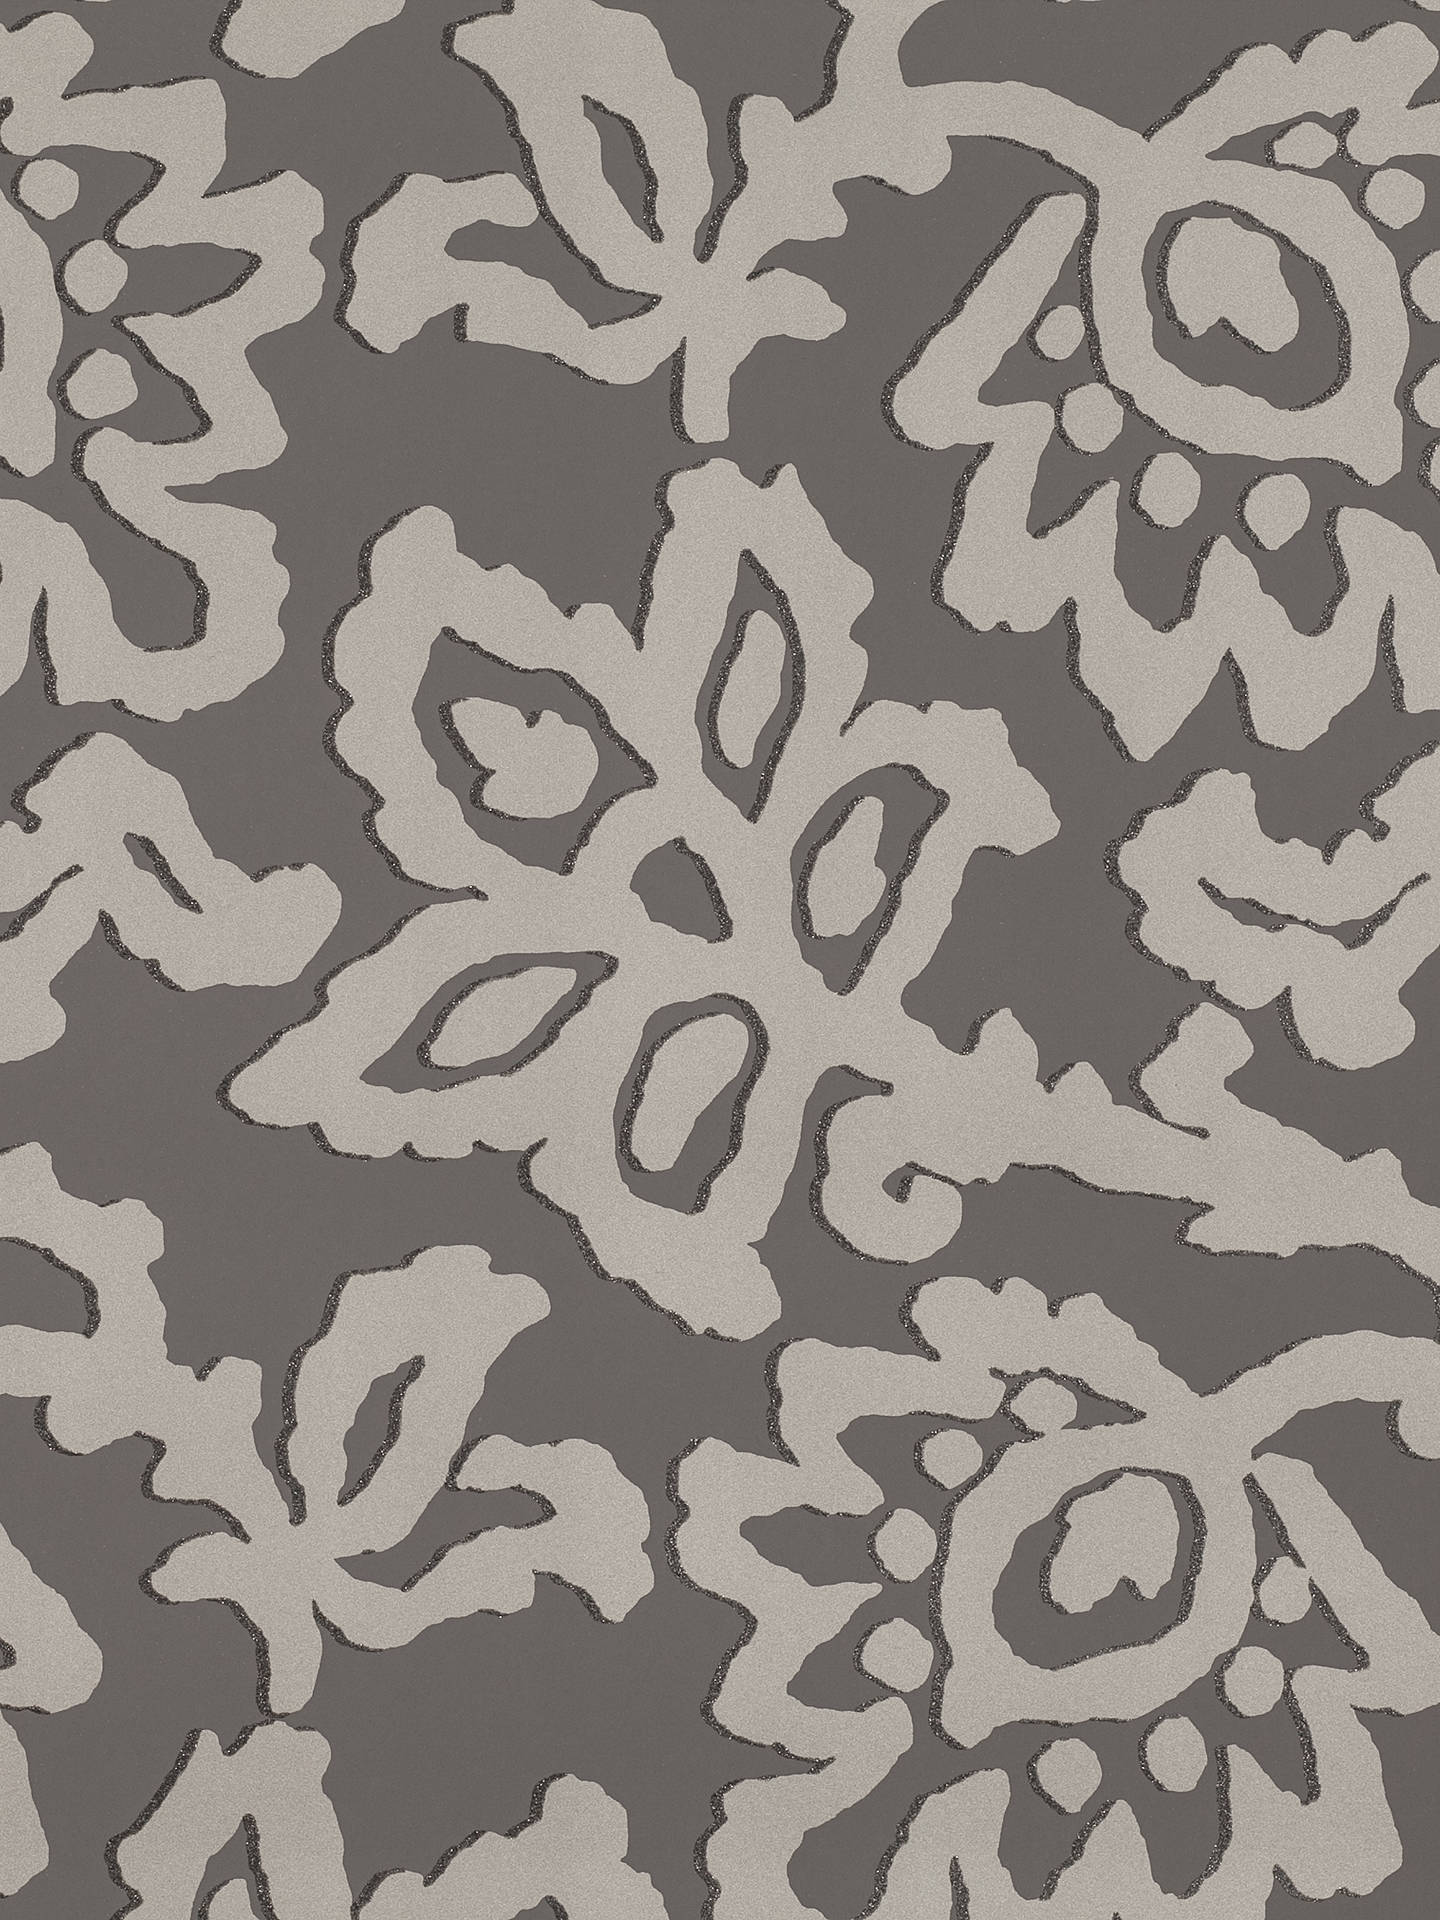 Buy Black Edition Elysian Paste the Wall Wallpaper, Steeple Grey W369/06 Online at johnlewis.com